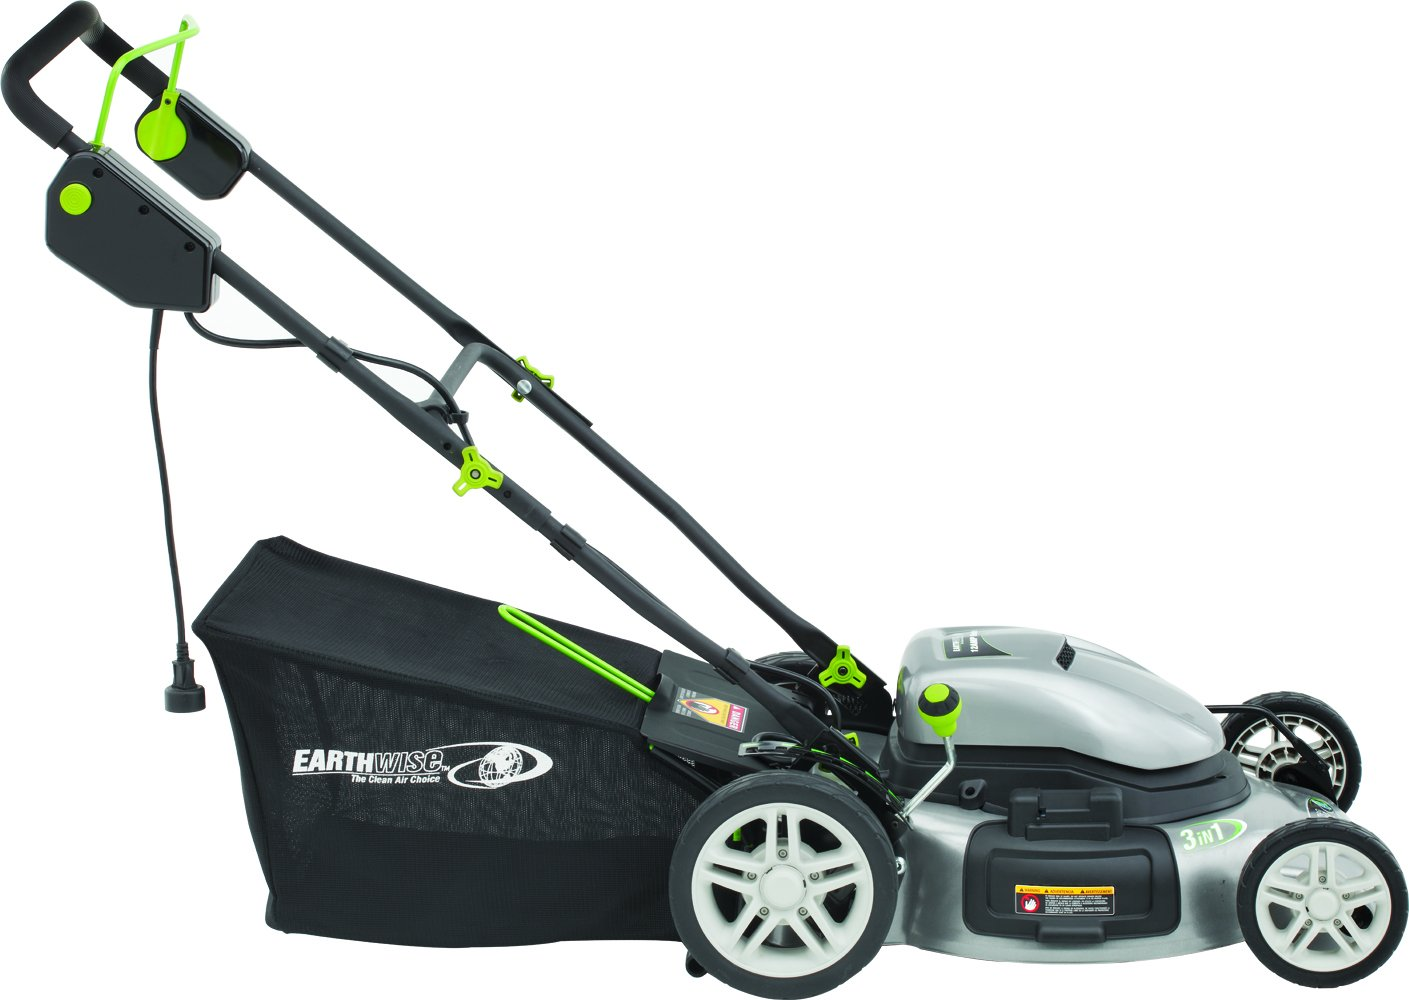 Earthwise 50520 20-Inch 12-Amp Corded Electric Lawn Mower by Earthwise